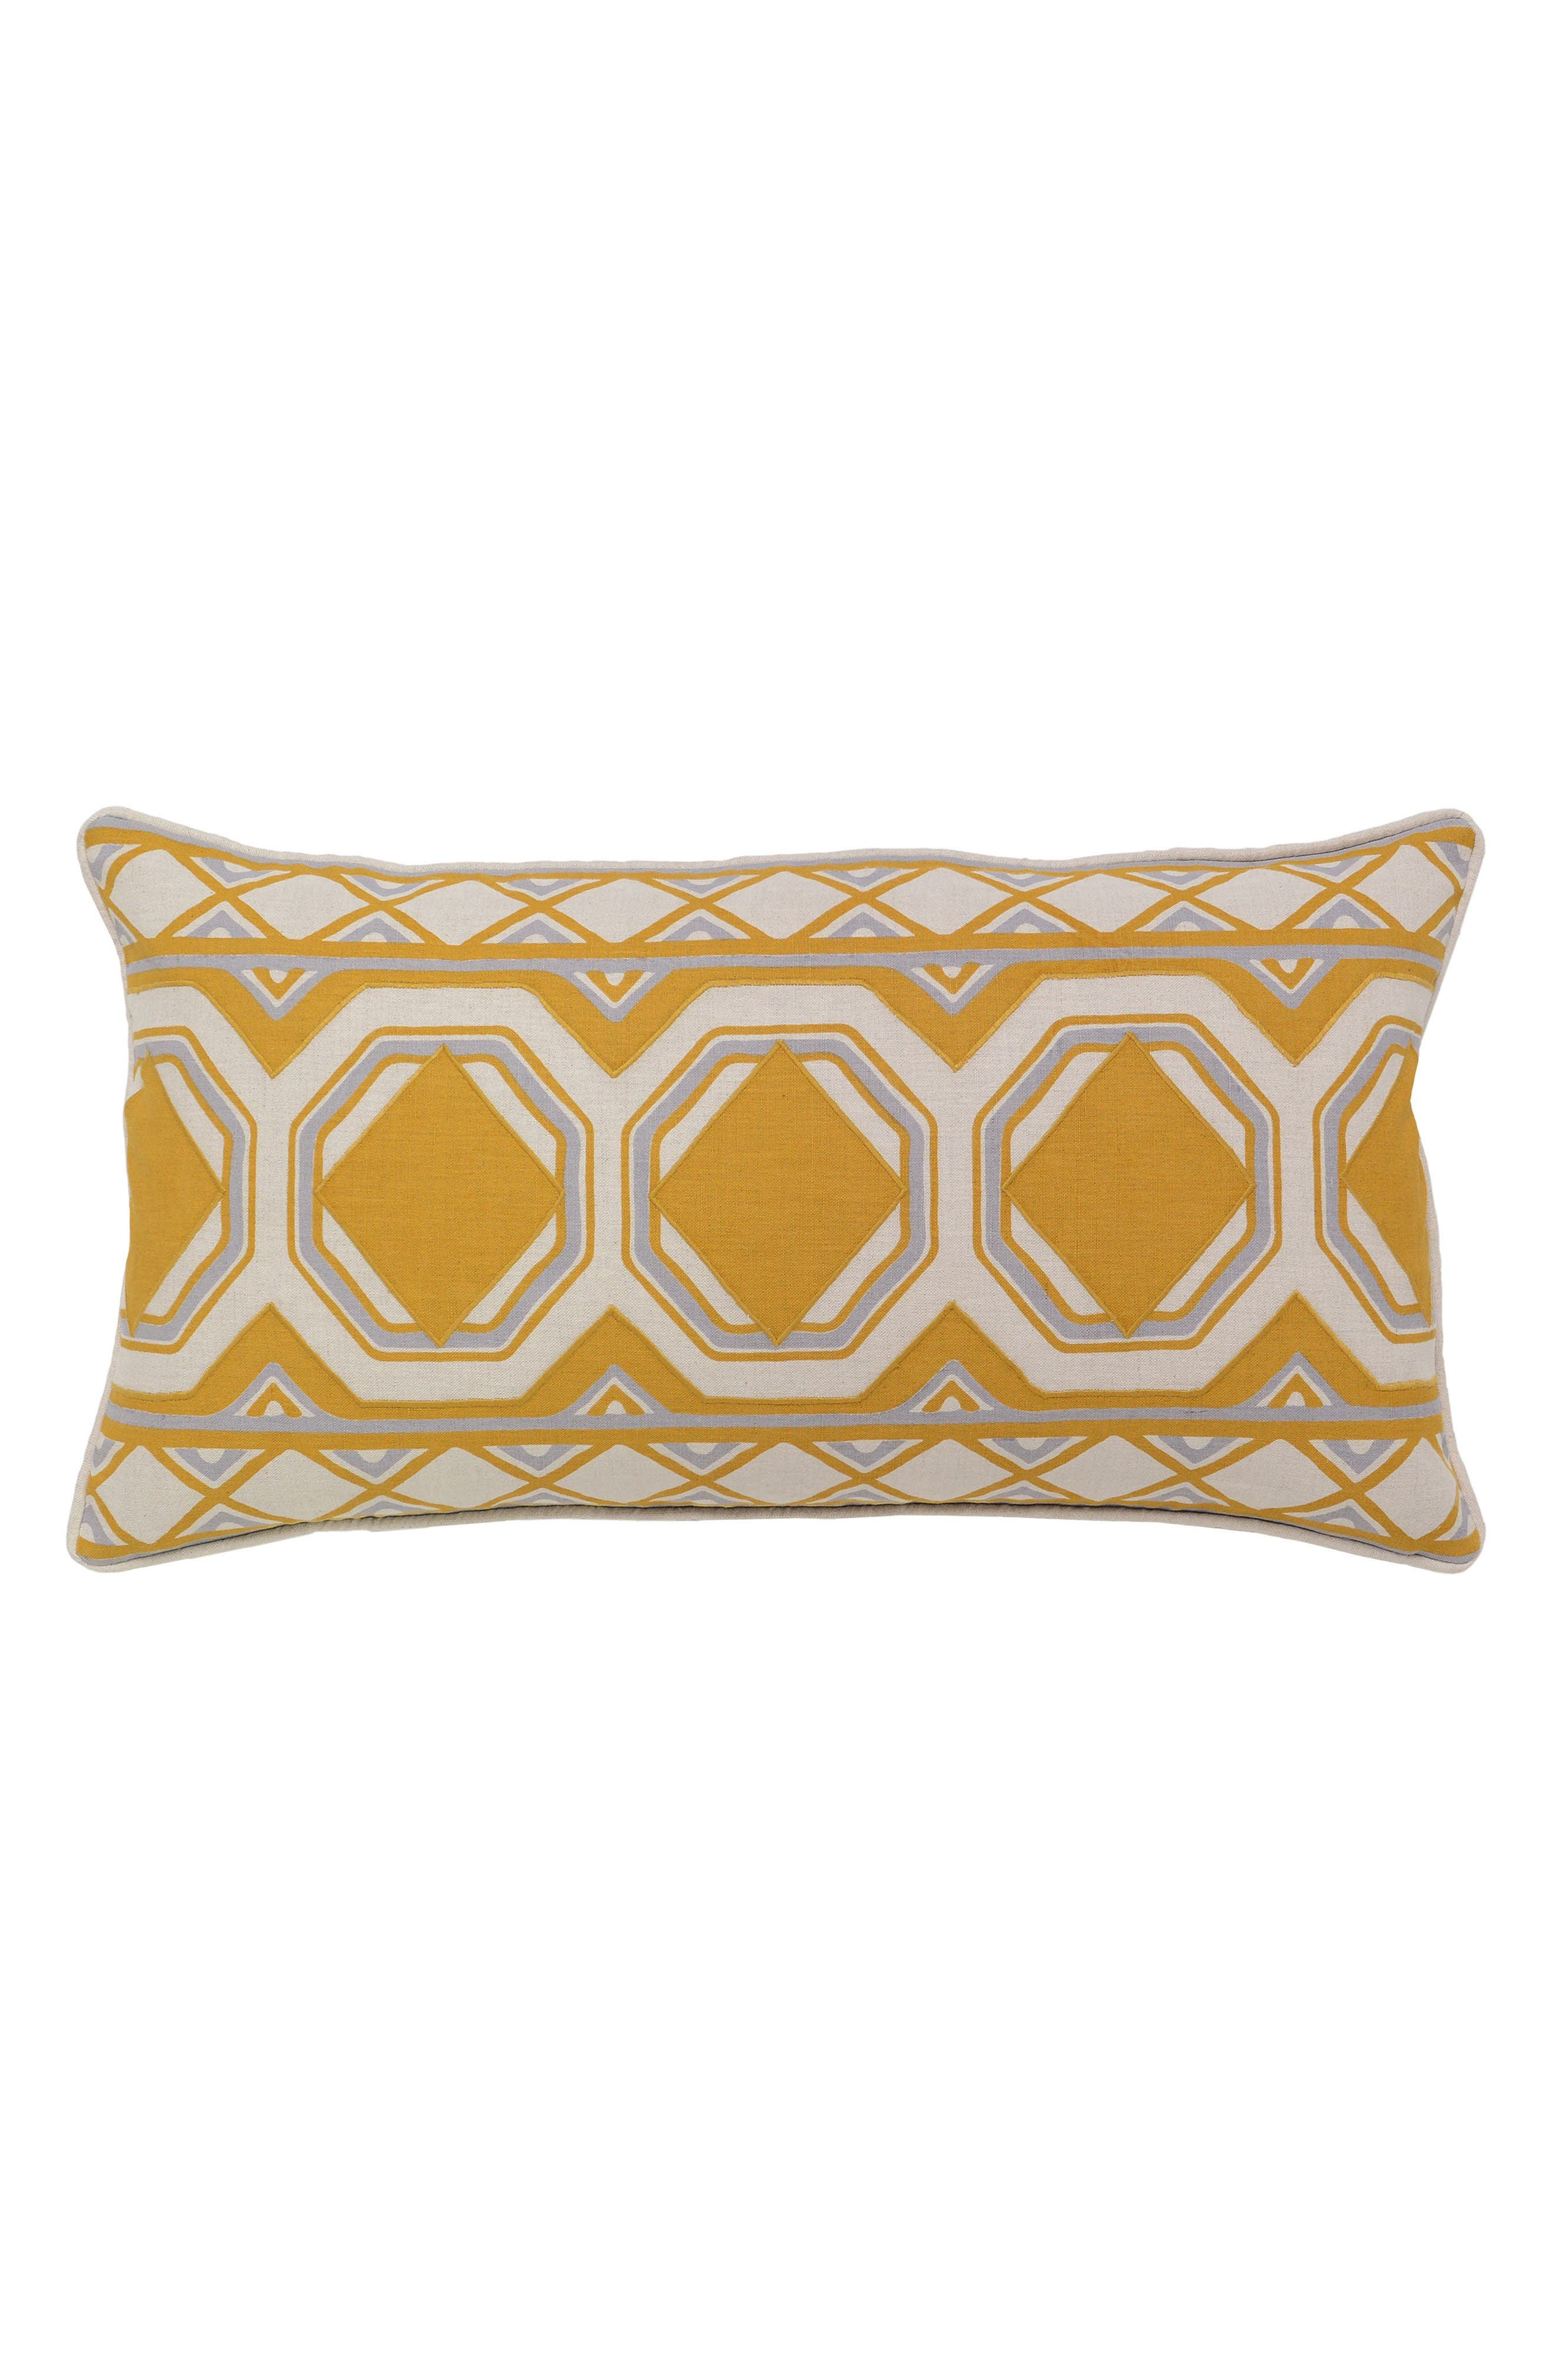 Cheval Accent Pillow,                         Main,                         color, OCHRE